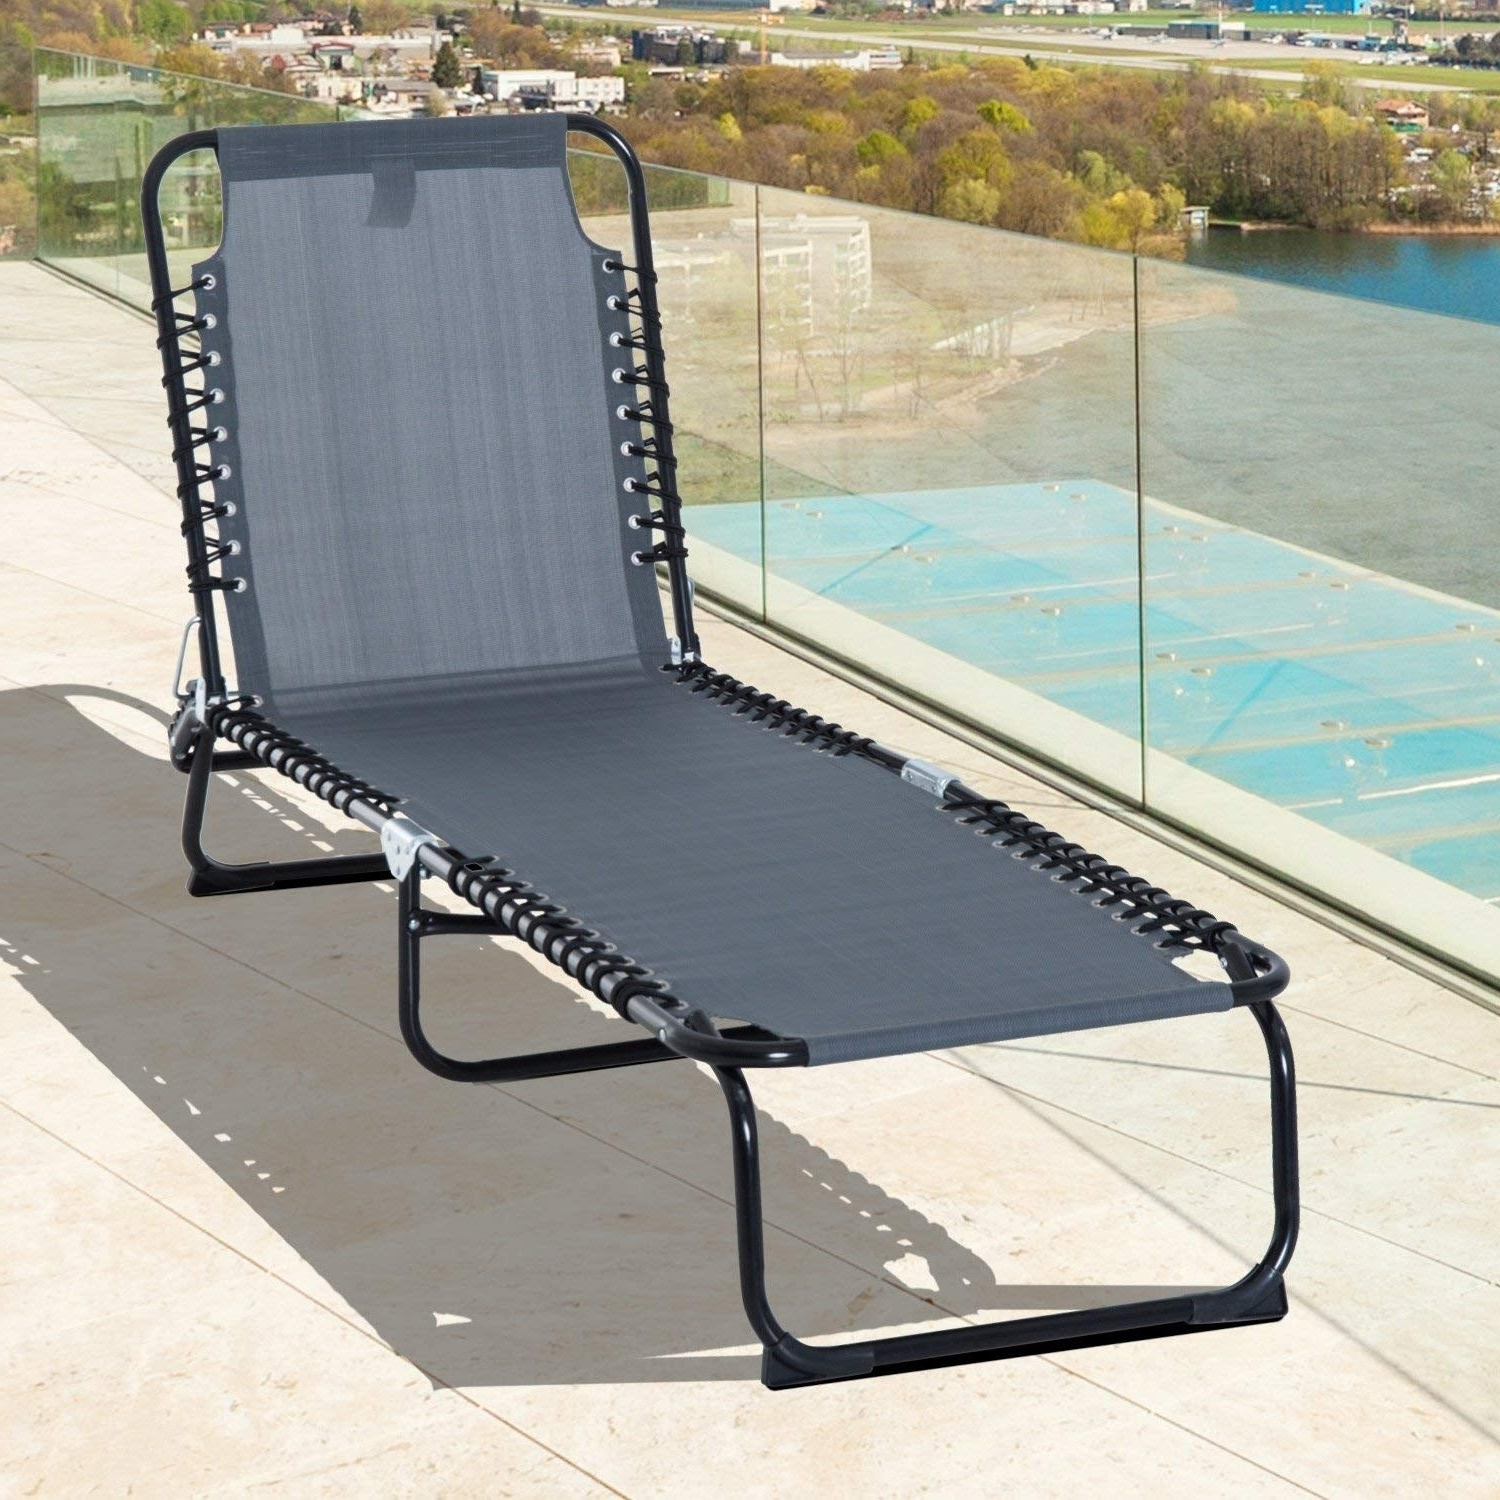 Famous 3 Position Portable Folding Reclining Beach Chaise Lounges Intended For Outsunny 3 Position Portable Reclining Beach Chaise Lounge Folding Chair  Outdoor Patio – Grey (View 15 of 25)